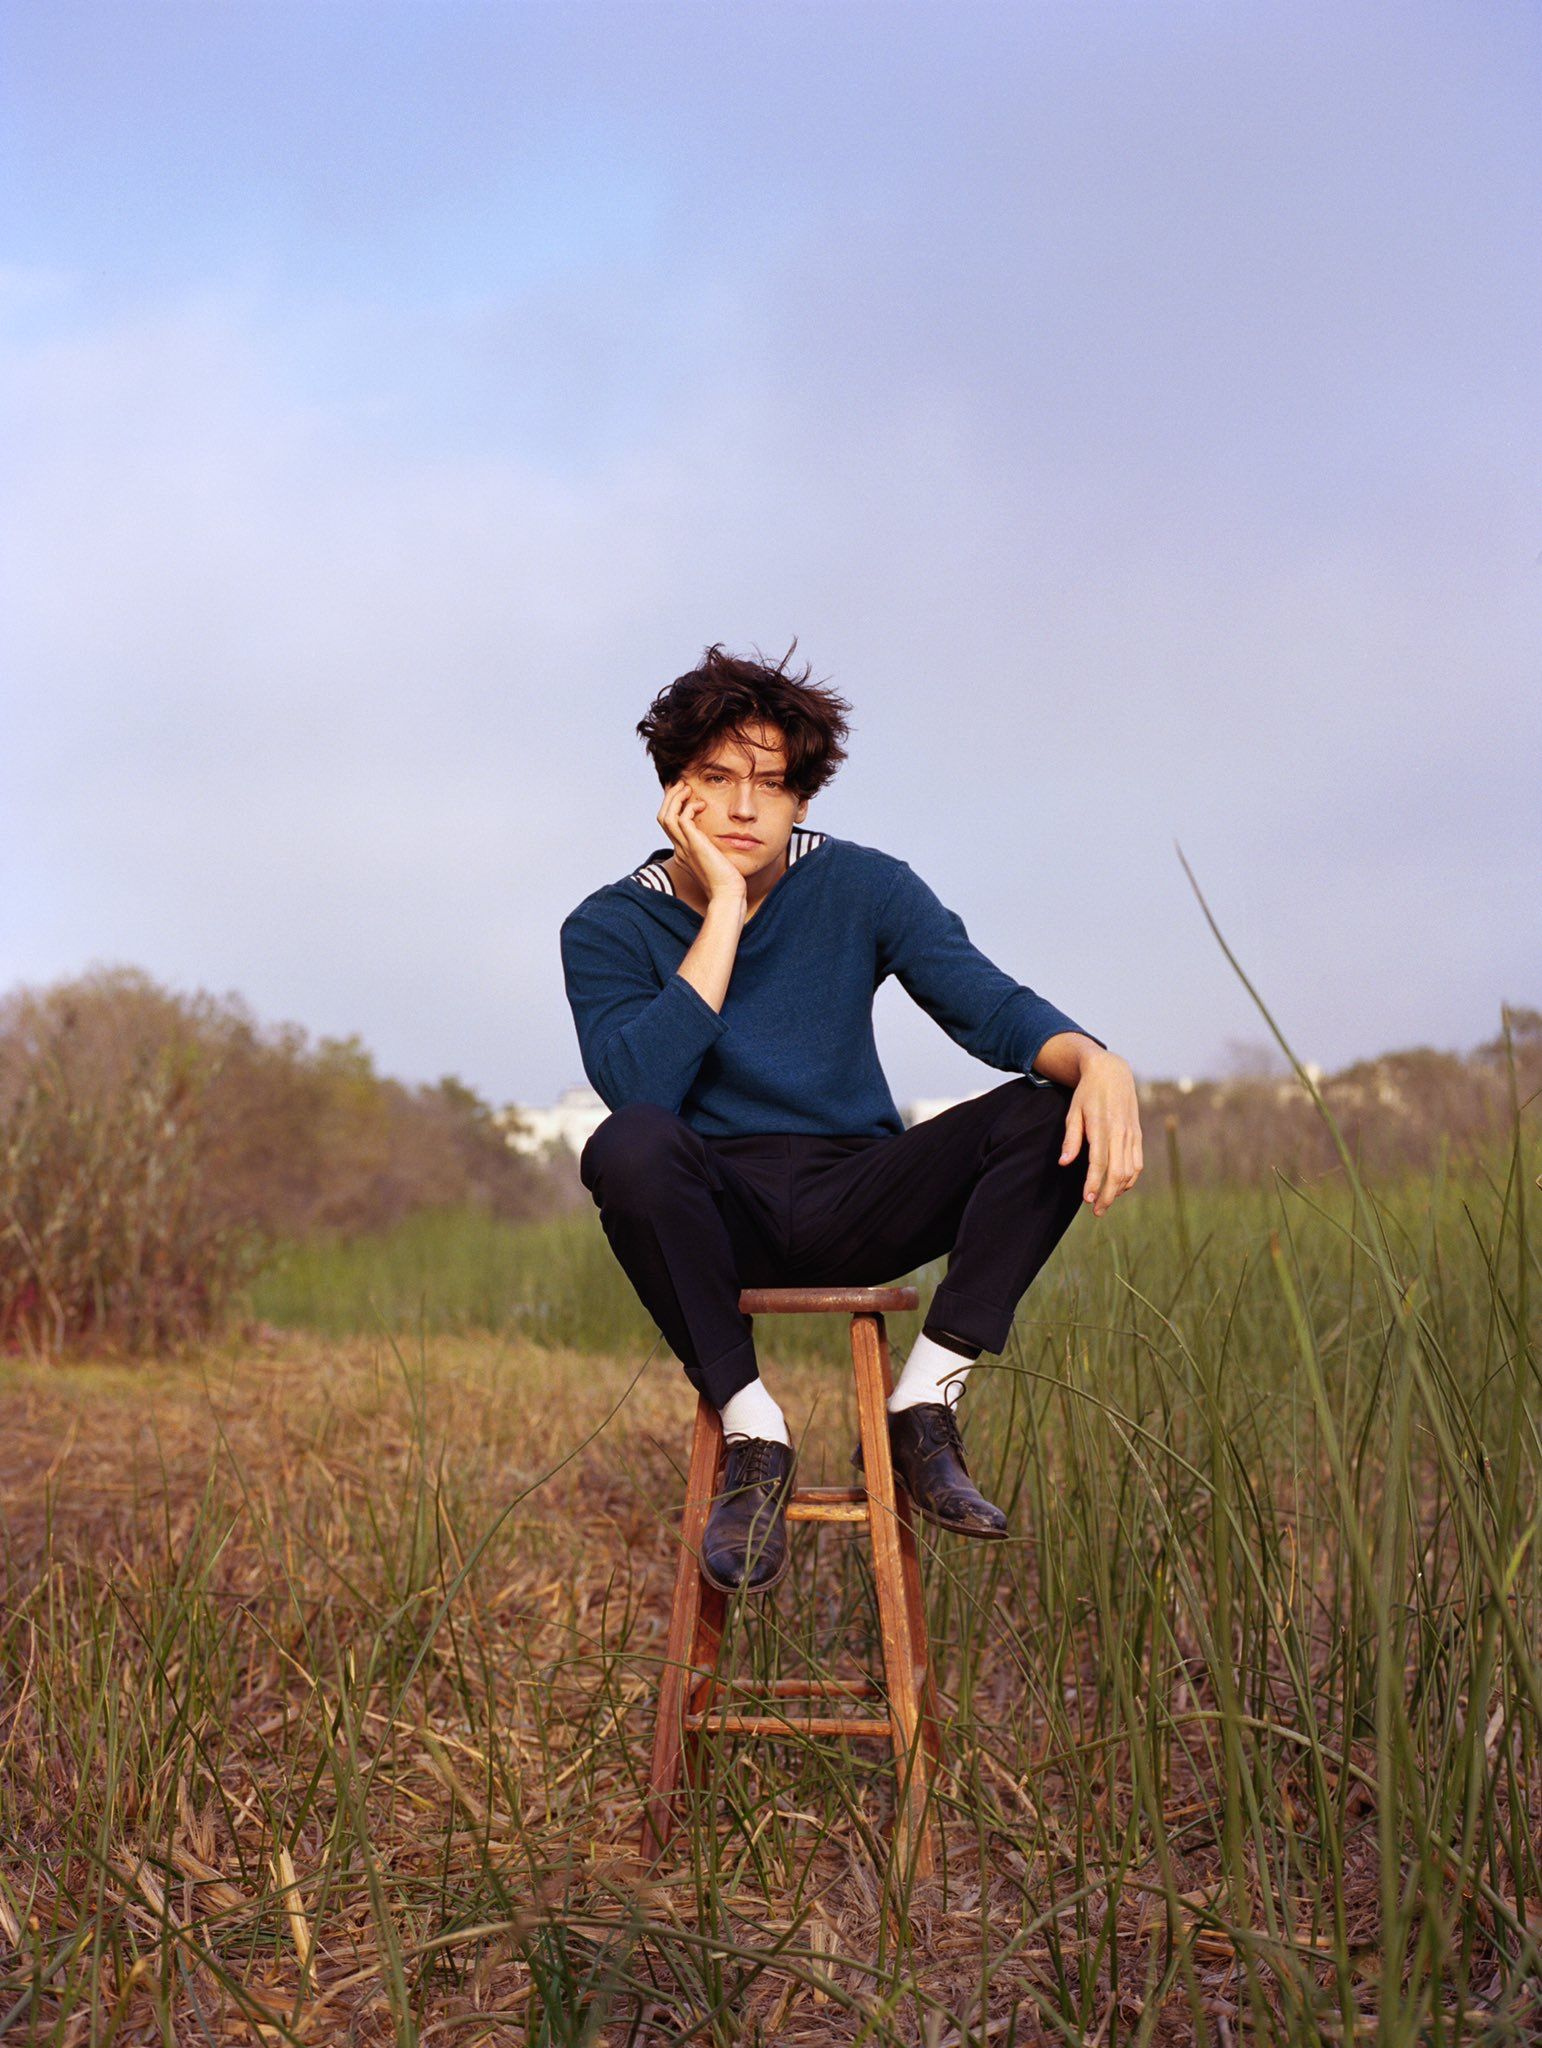 This remarkable cole sprouse naken bild